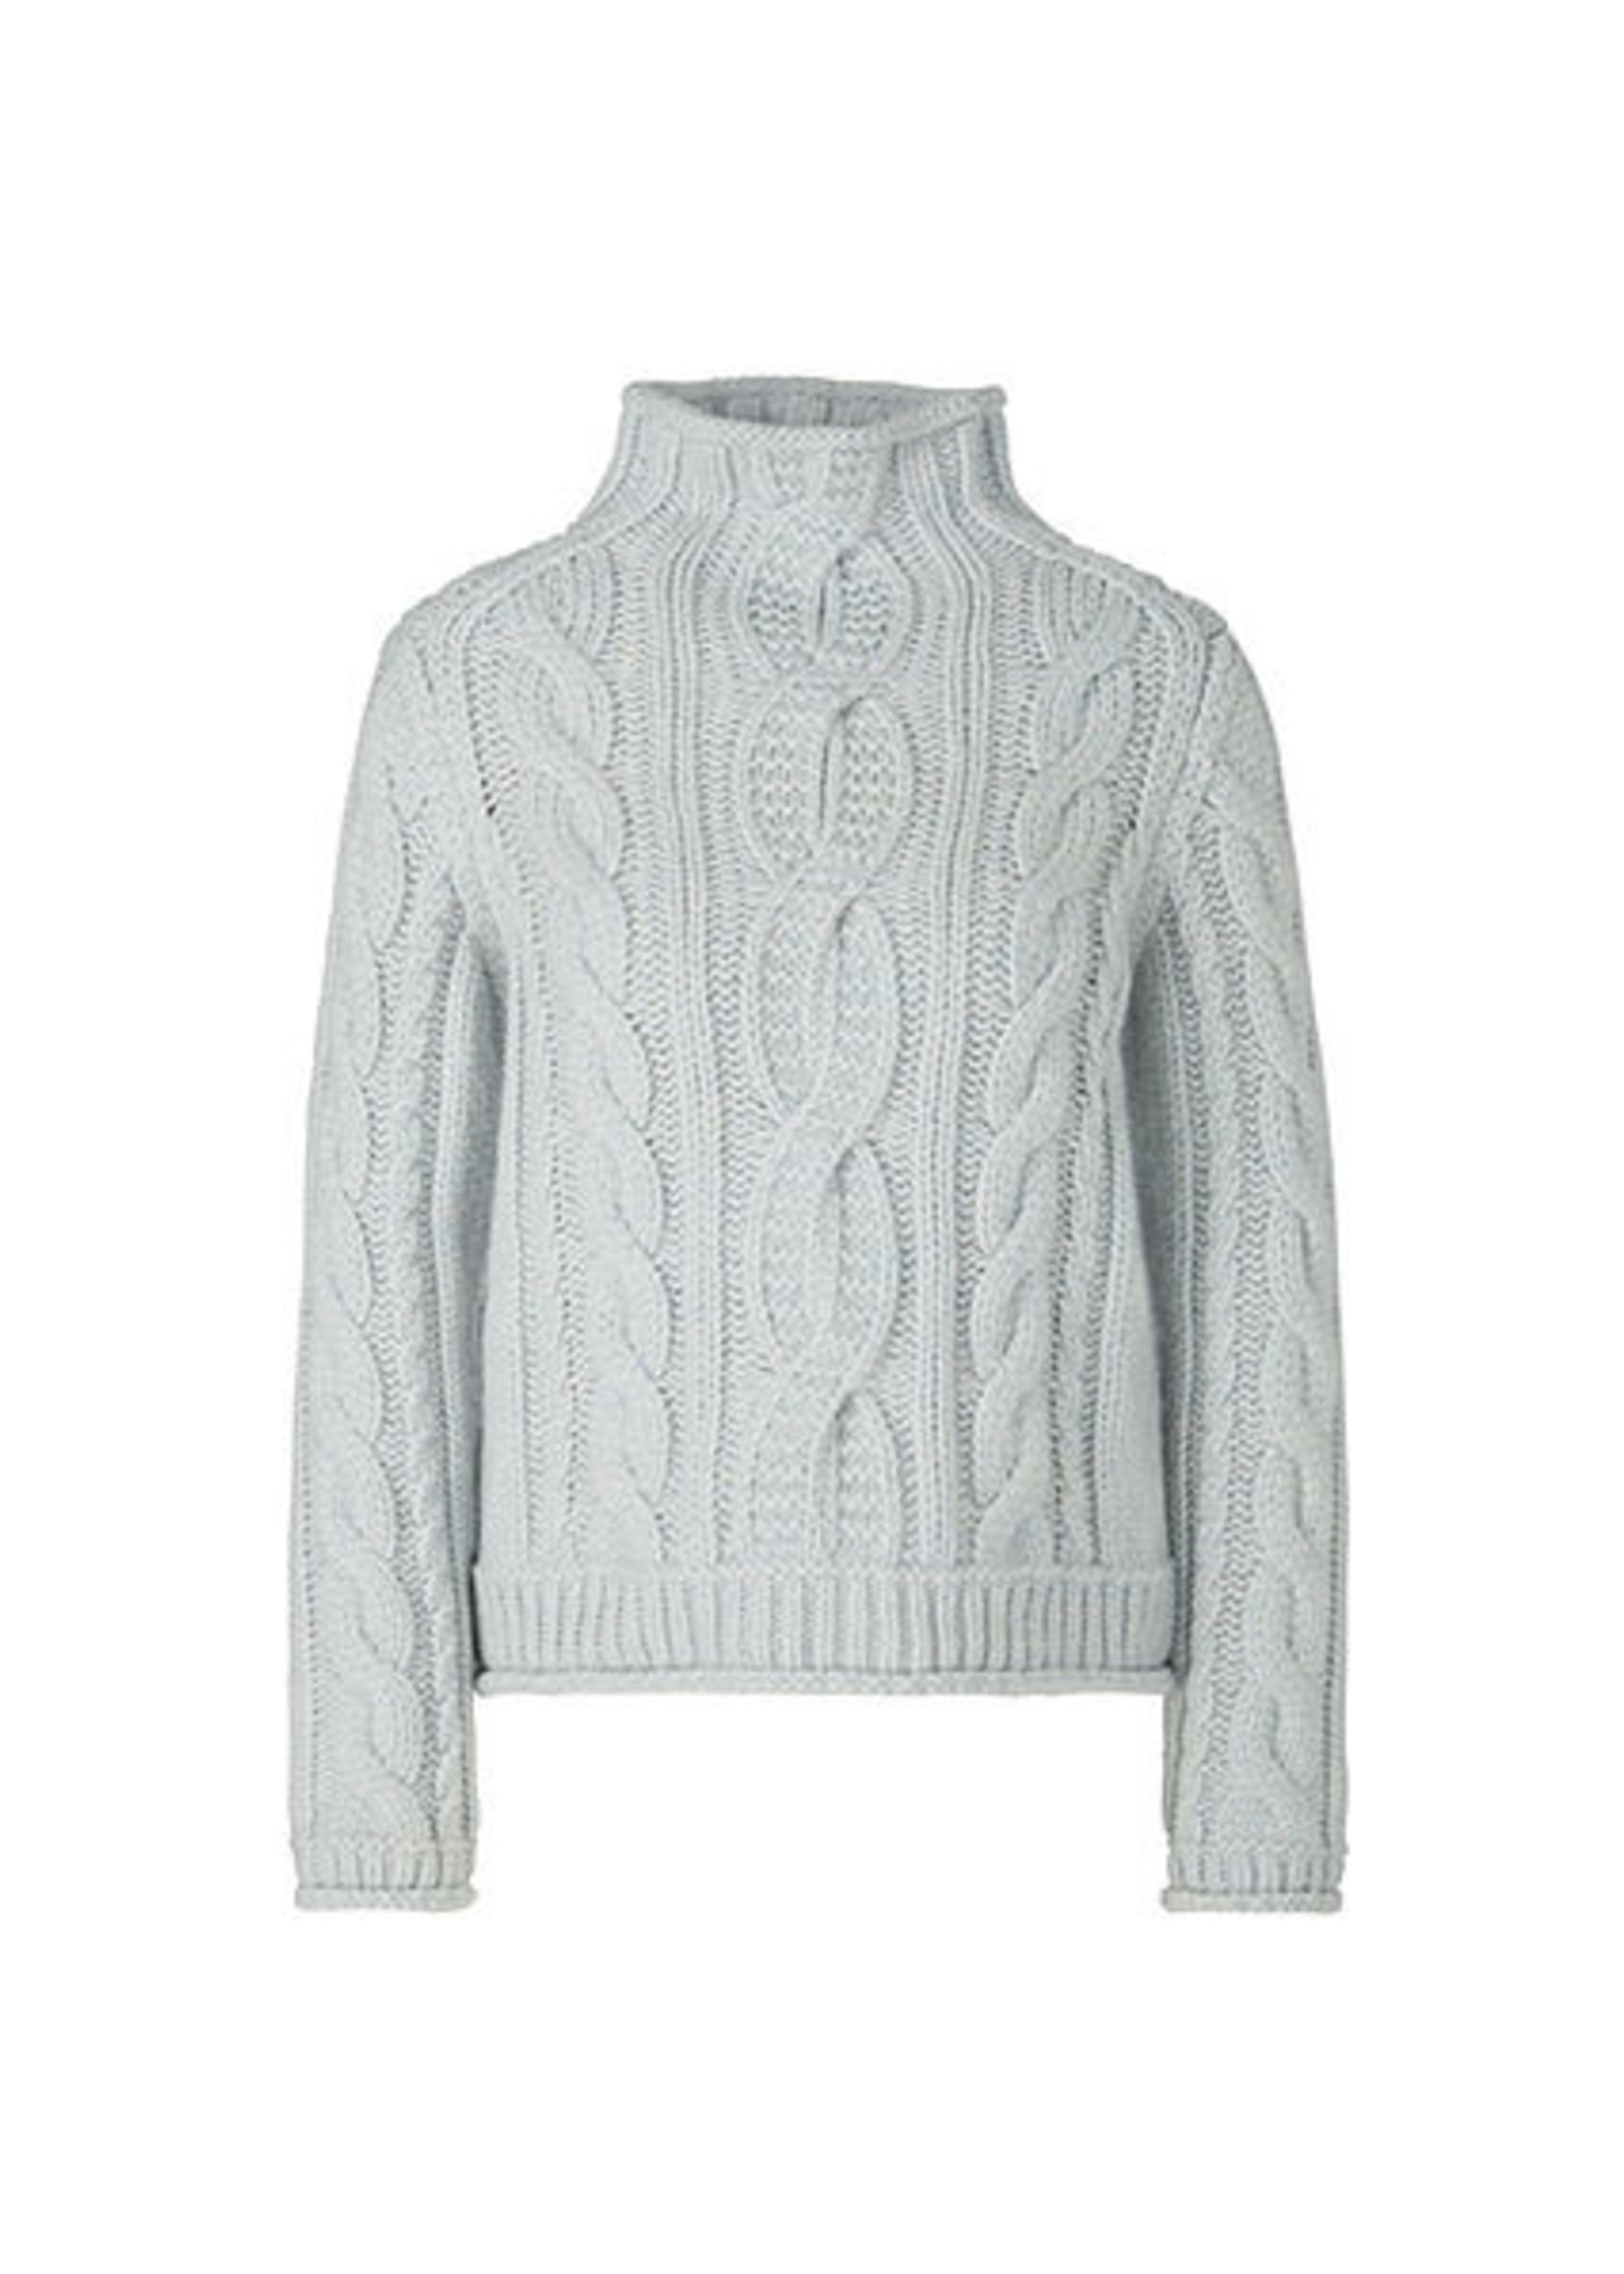 Sweater RC 41.46 M33 silver grey